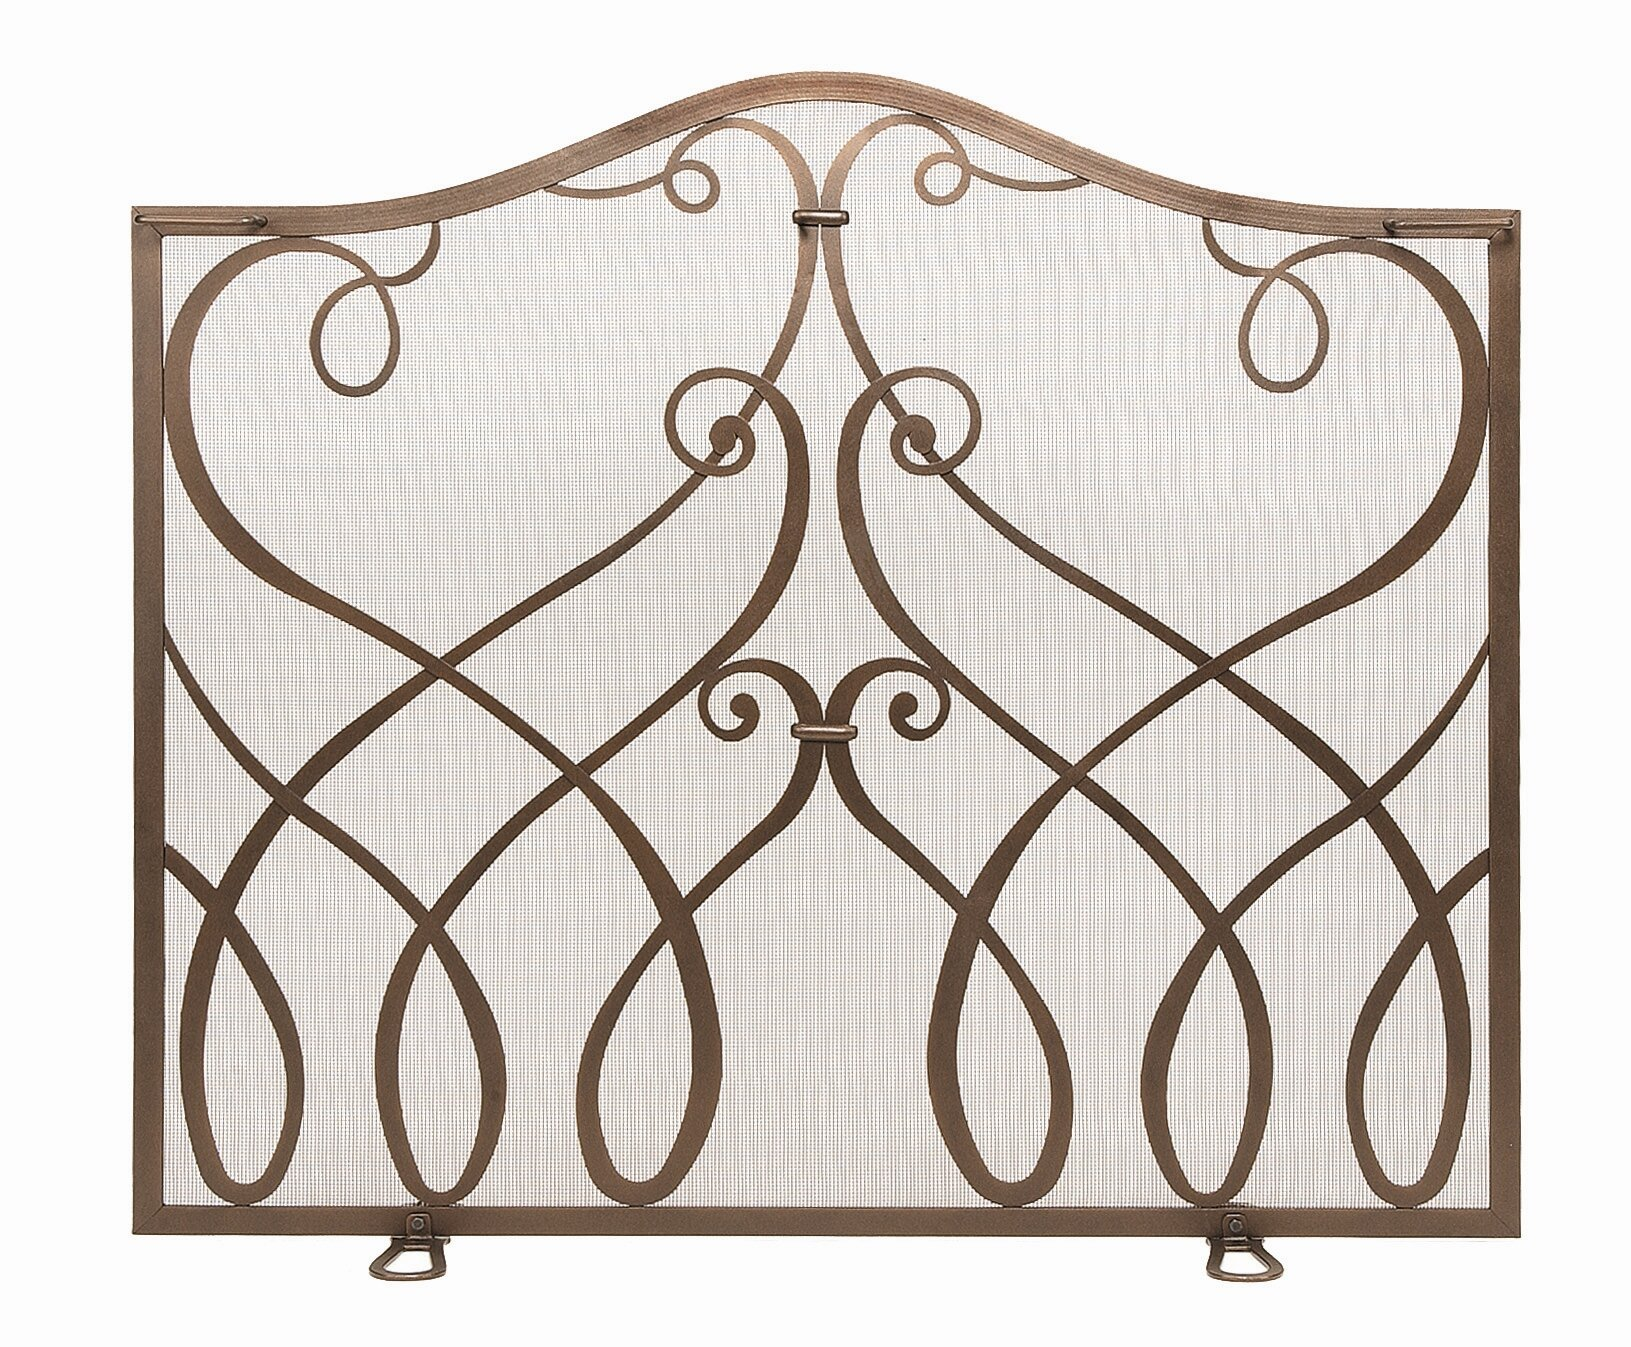 minuteman cypher single panel iron fireplace screen reviews wayfair rh wayfair com  minuteman fireplace screen with doors